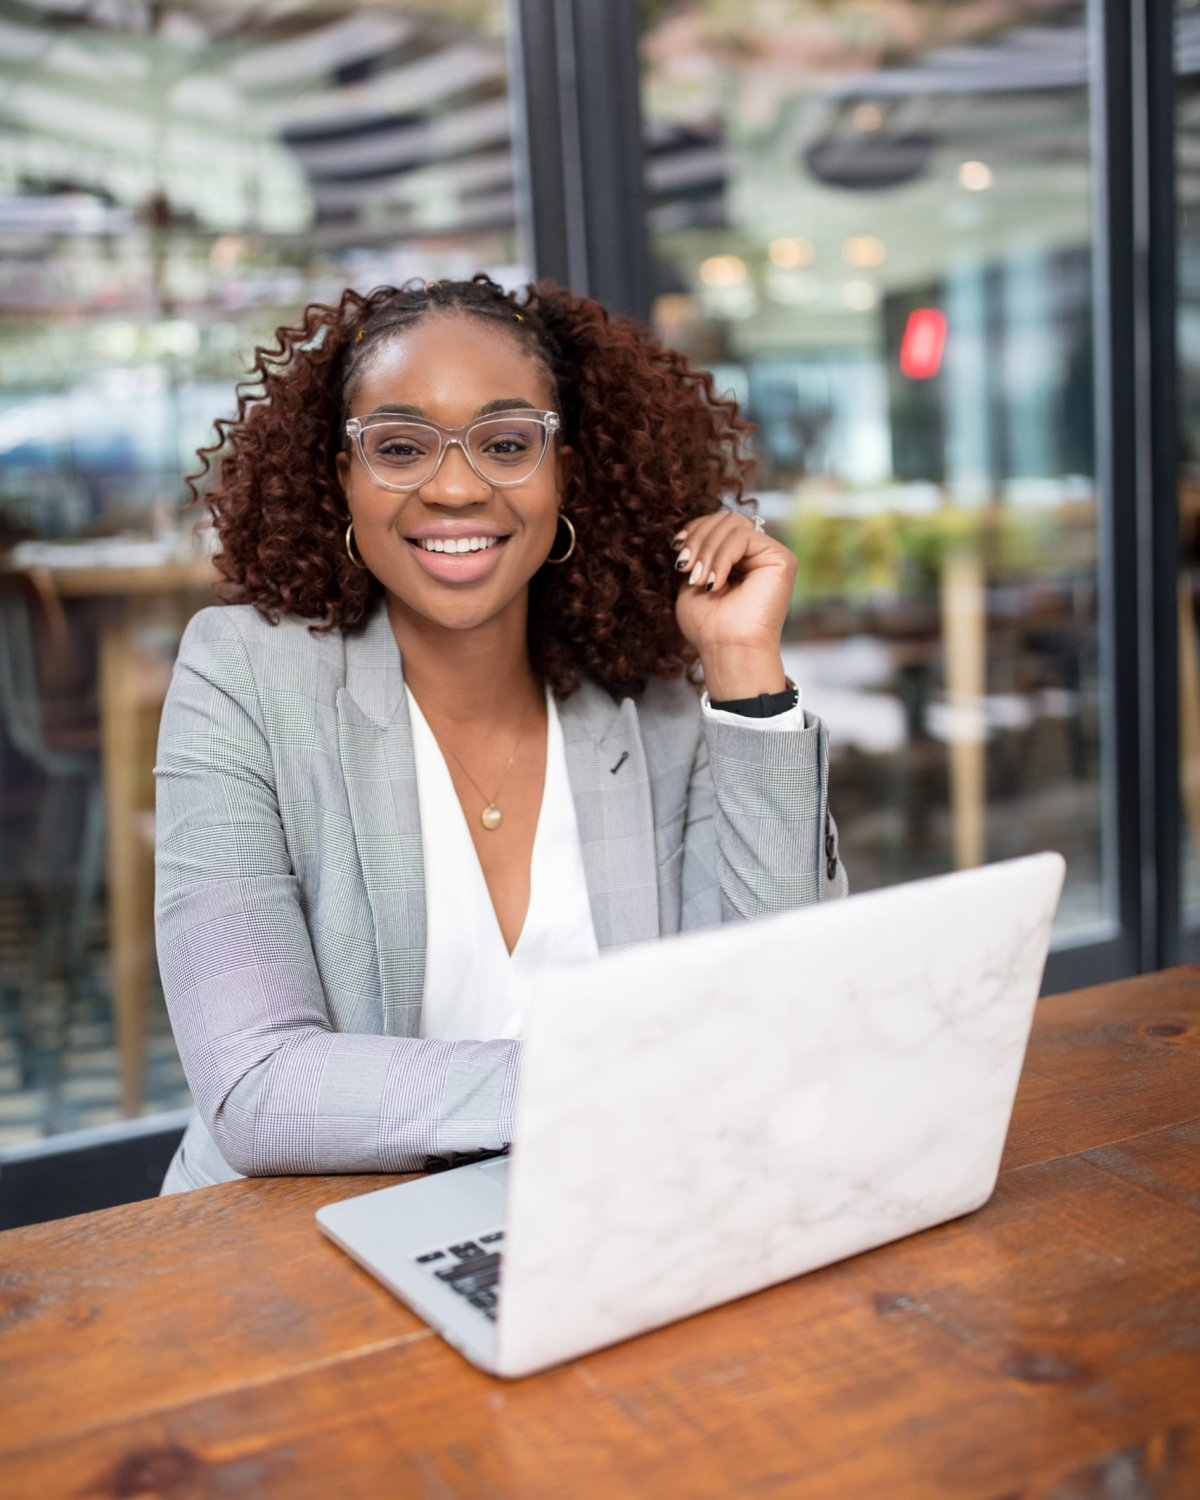 Ijeoma Kola in Signature Clear Framed Glasses with Laptop